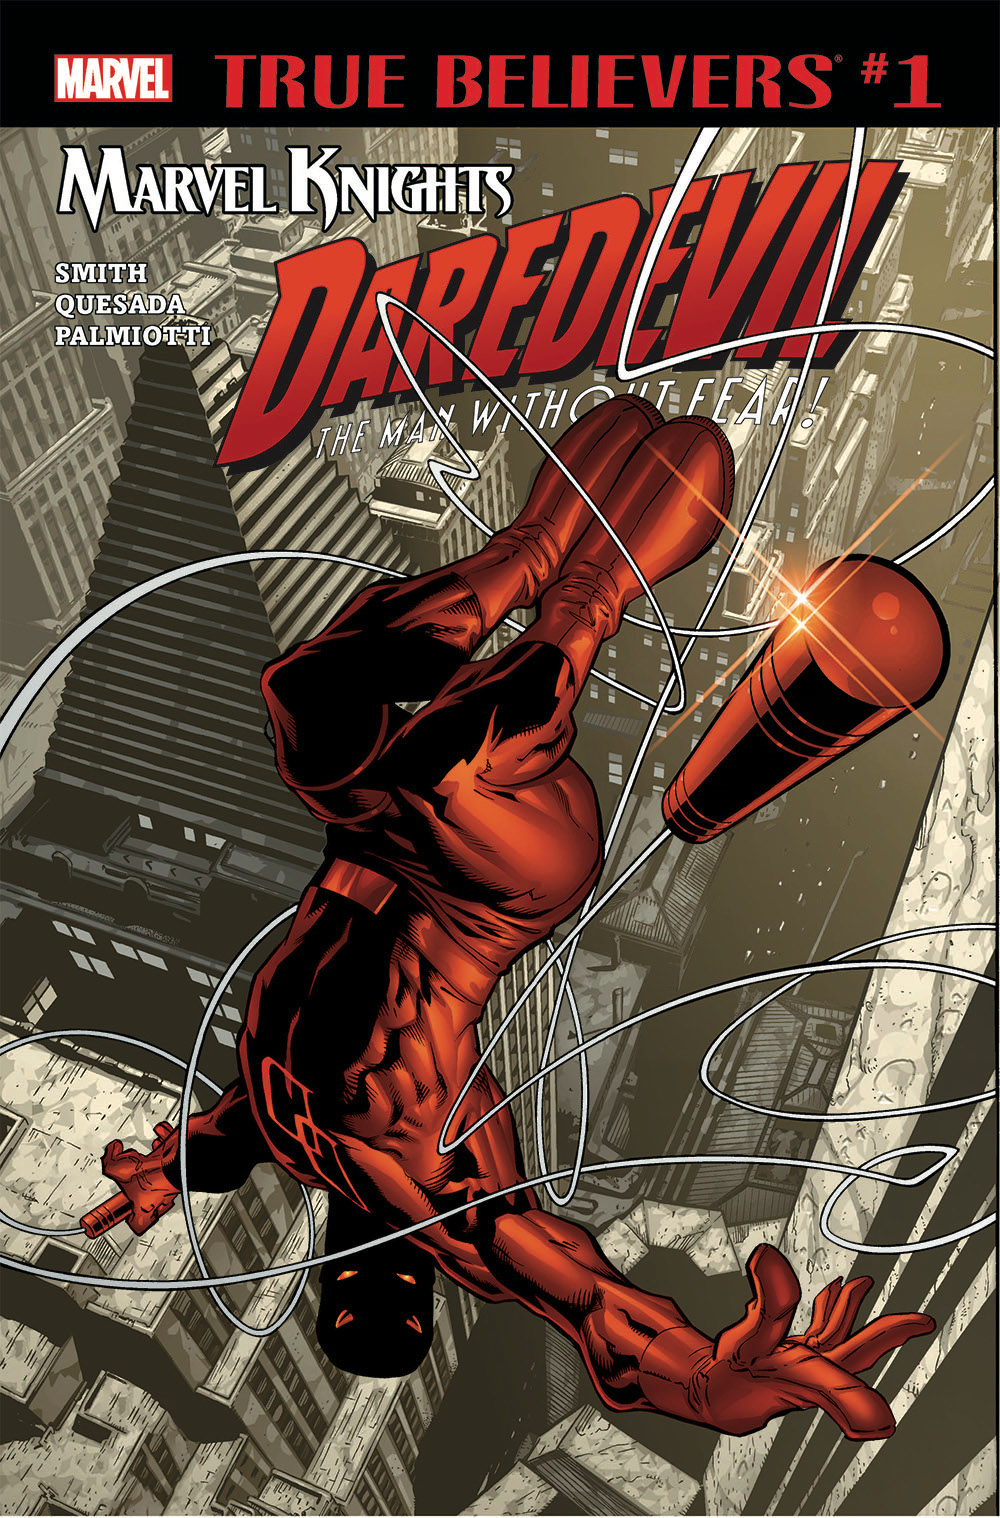 True Believers: Marvel Knights 20th Anniversary - Daredevil by Smith, Quesada & Palmiotti Vol 1